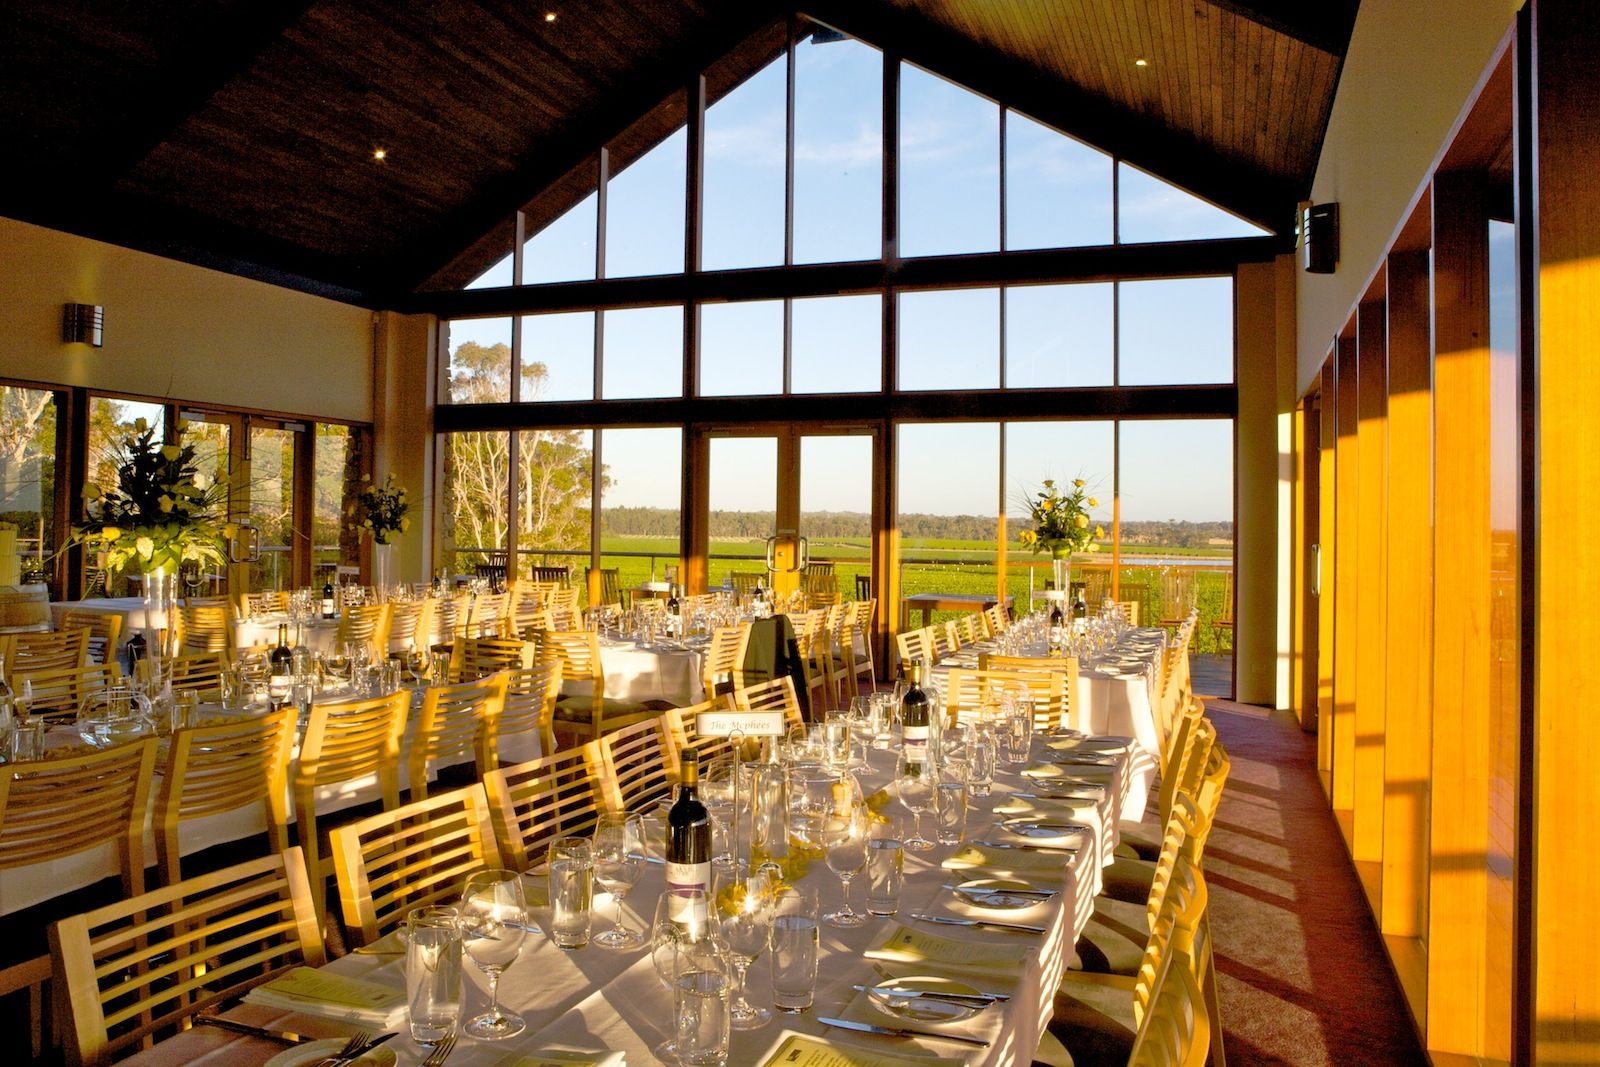 best outdoor wedding venues perth%0A Margaret River Winery Wedding Venue and Reception  magnificent views   manicured grounds  delicious menus and a personal Wedding Coordinator